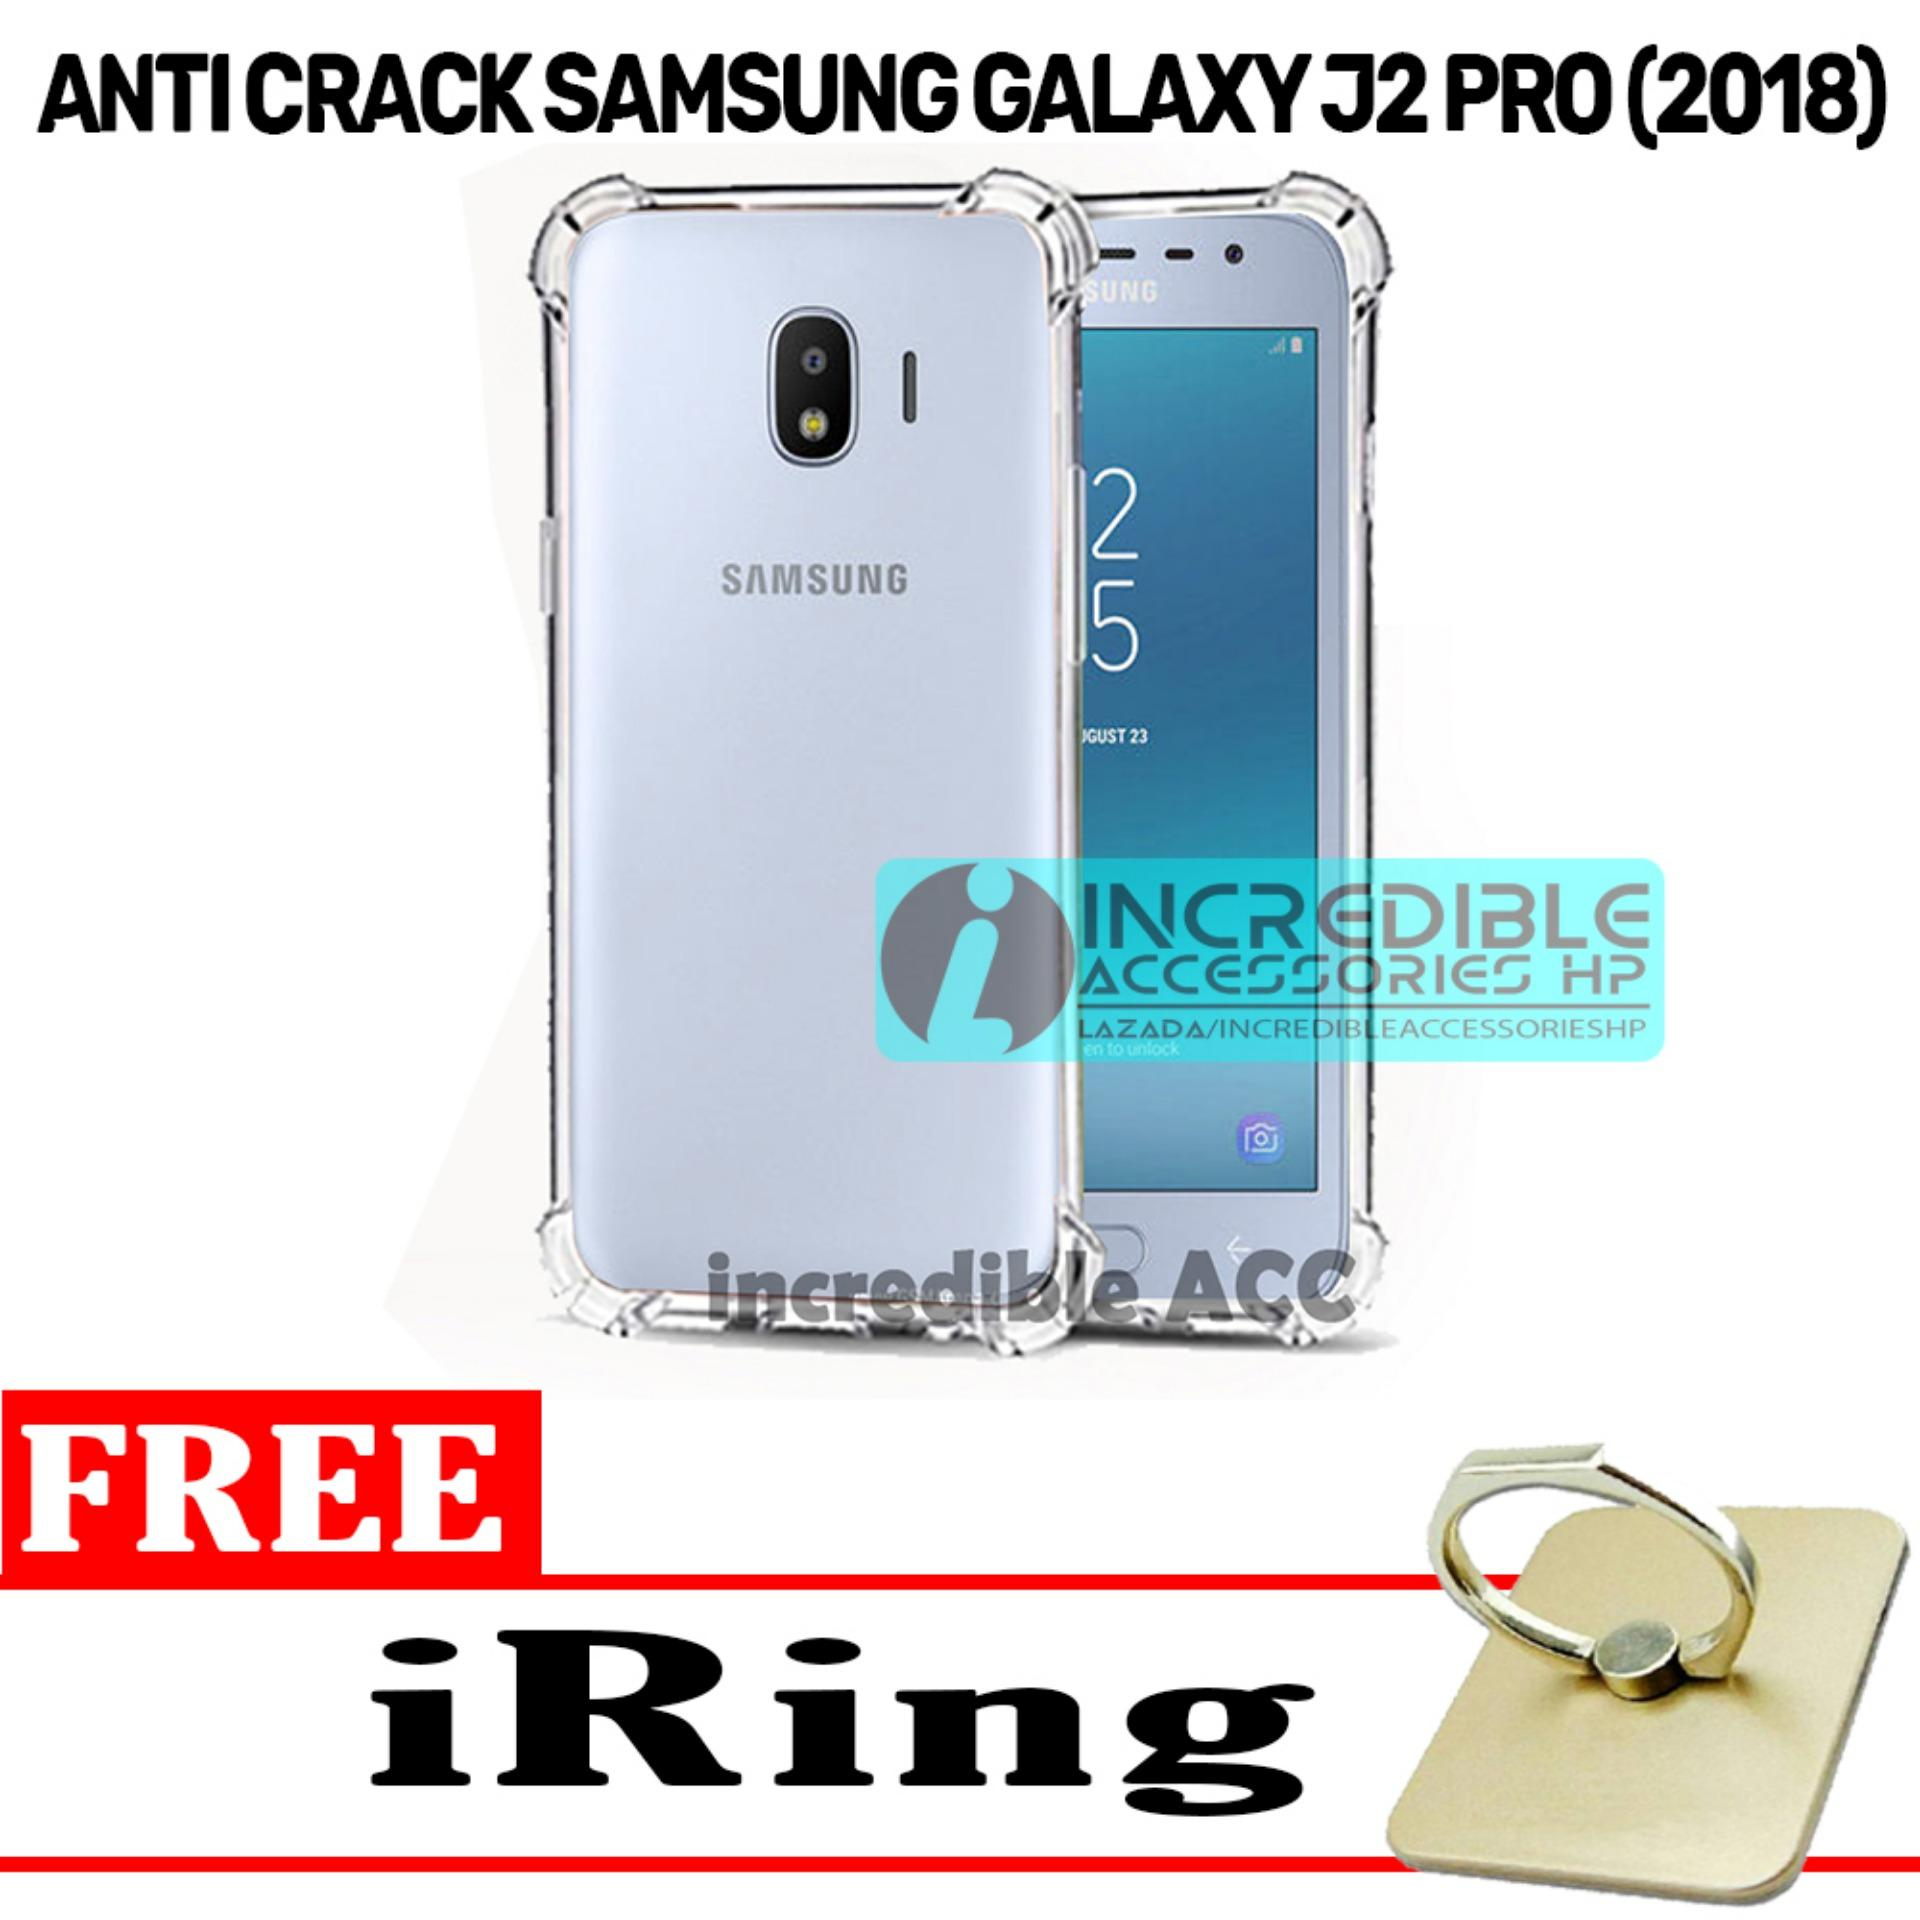 Samsung Galaxy J2 Pro (2018) Anti Crack Softcase Elegant Transparant Jelly Case - White